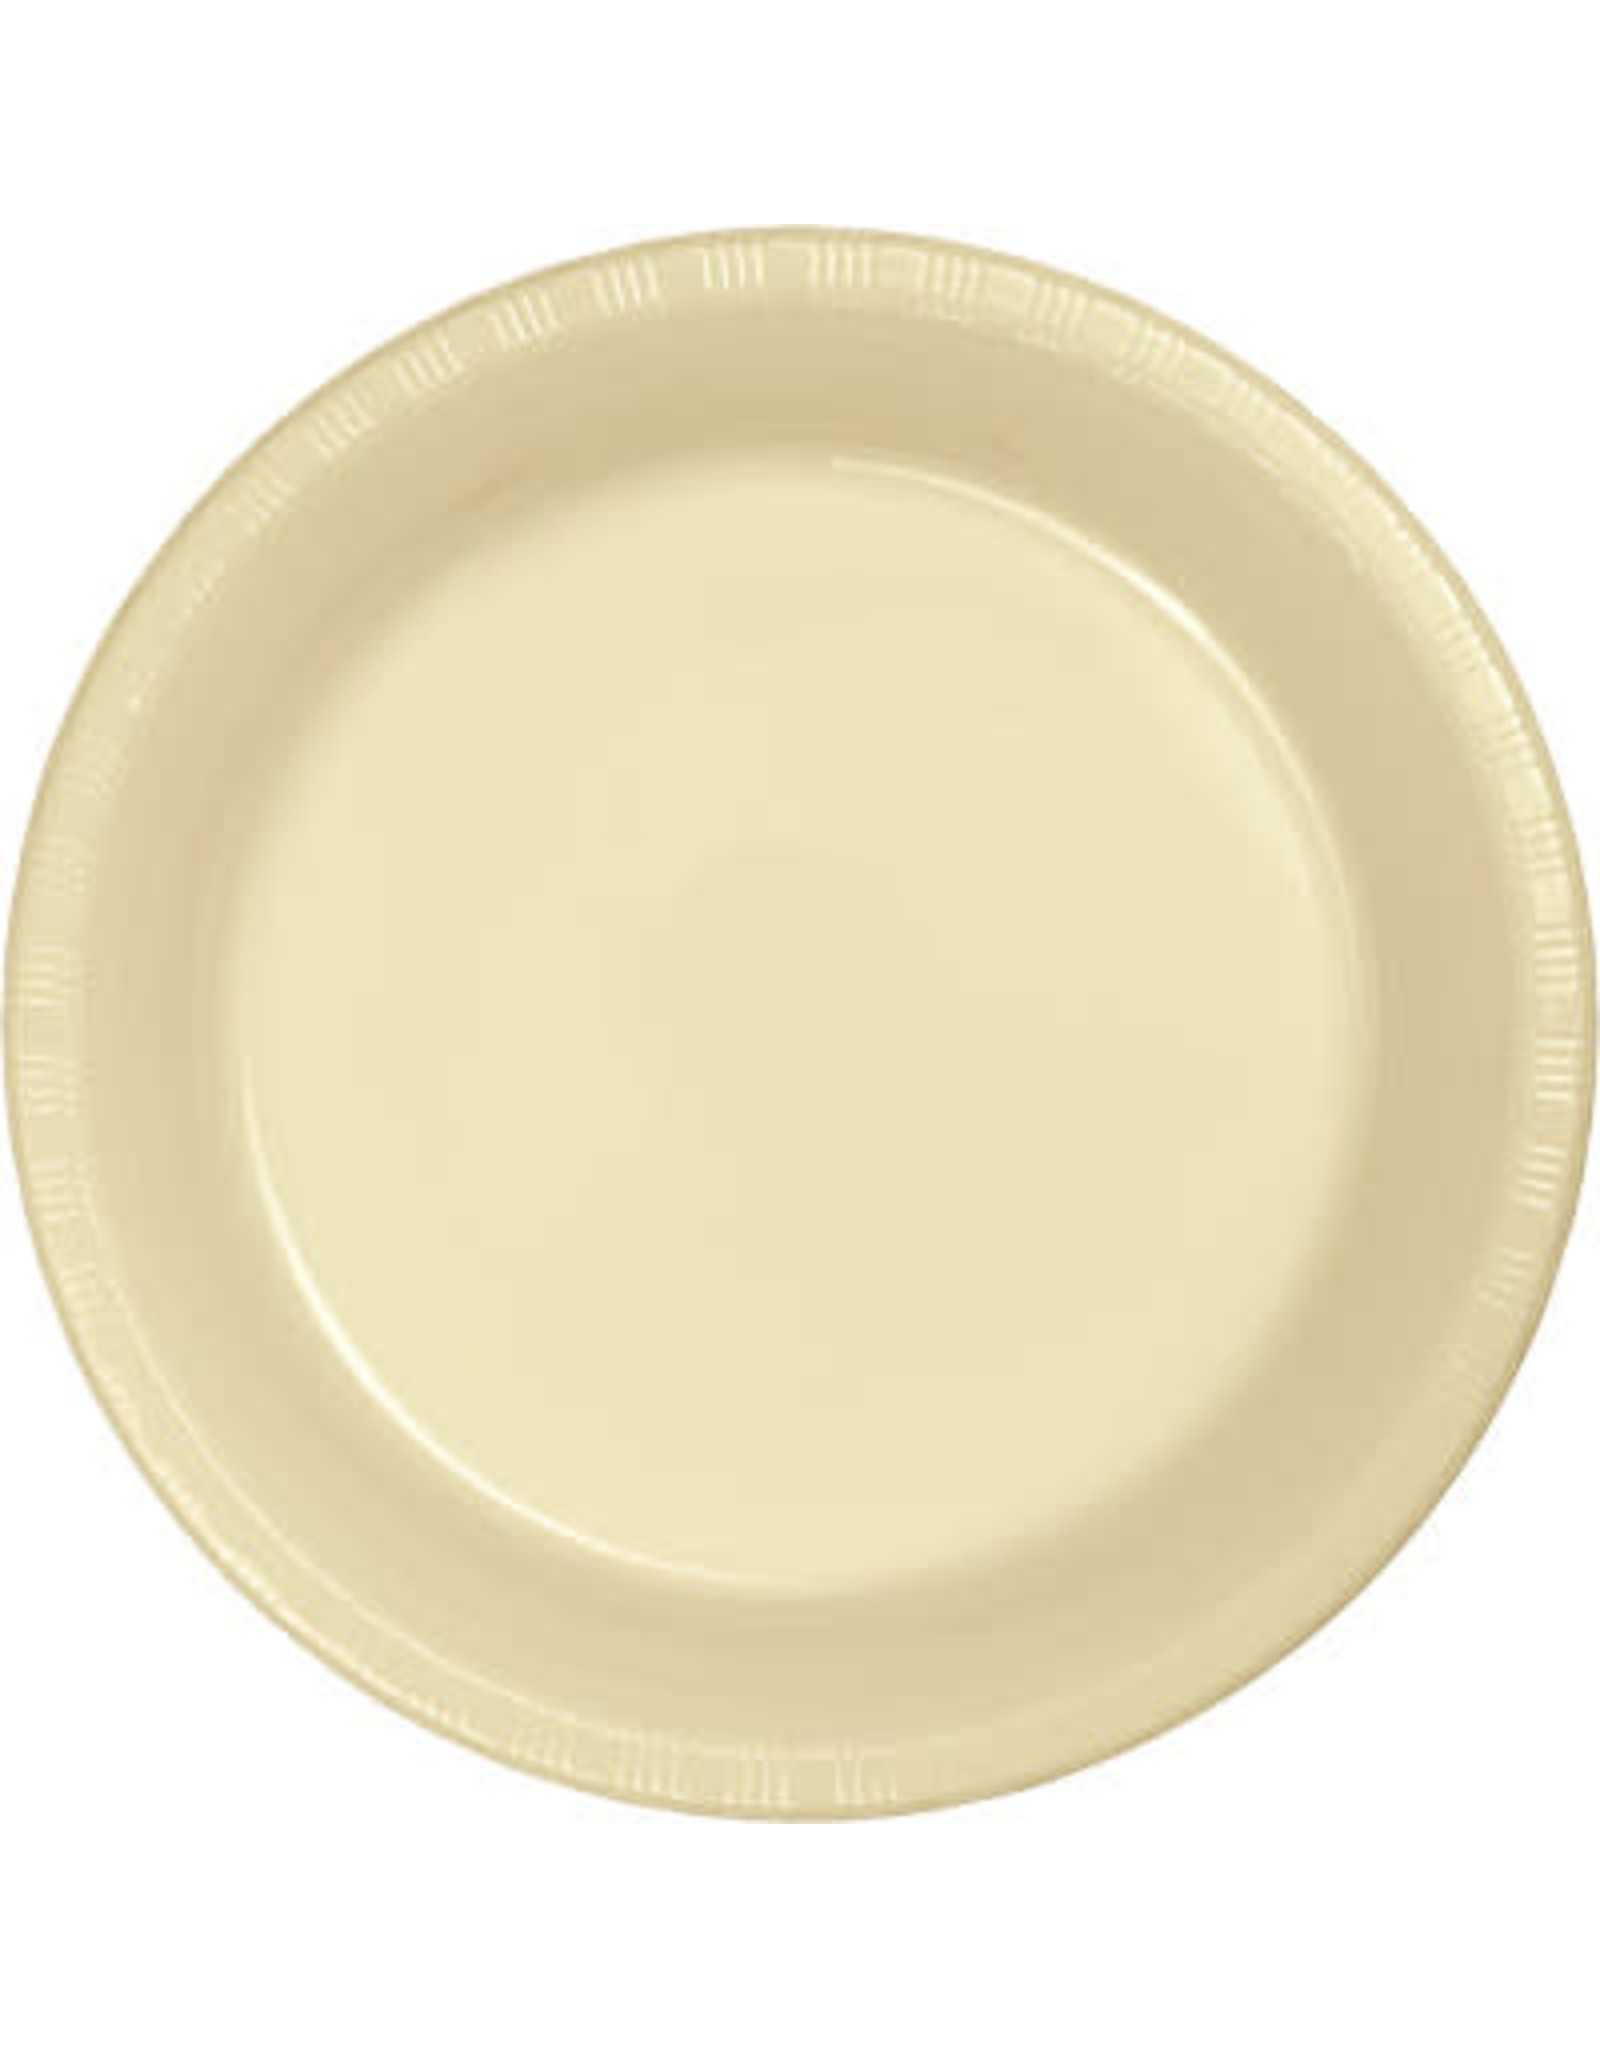 Touch of Color IVORY DESSERT PLATES